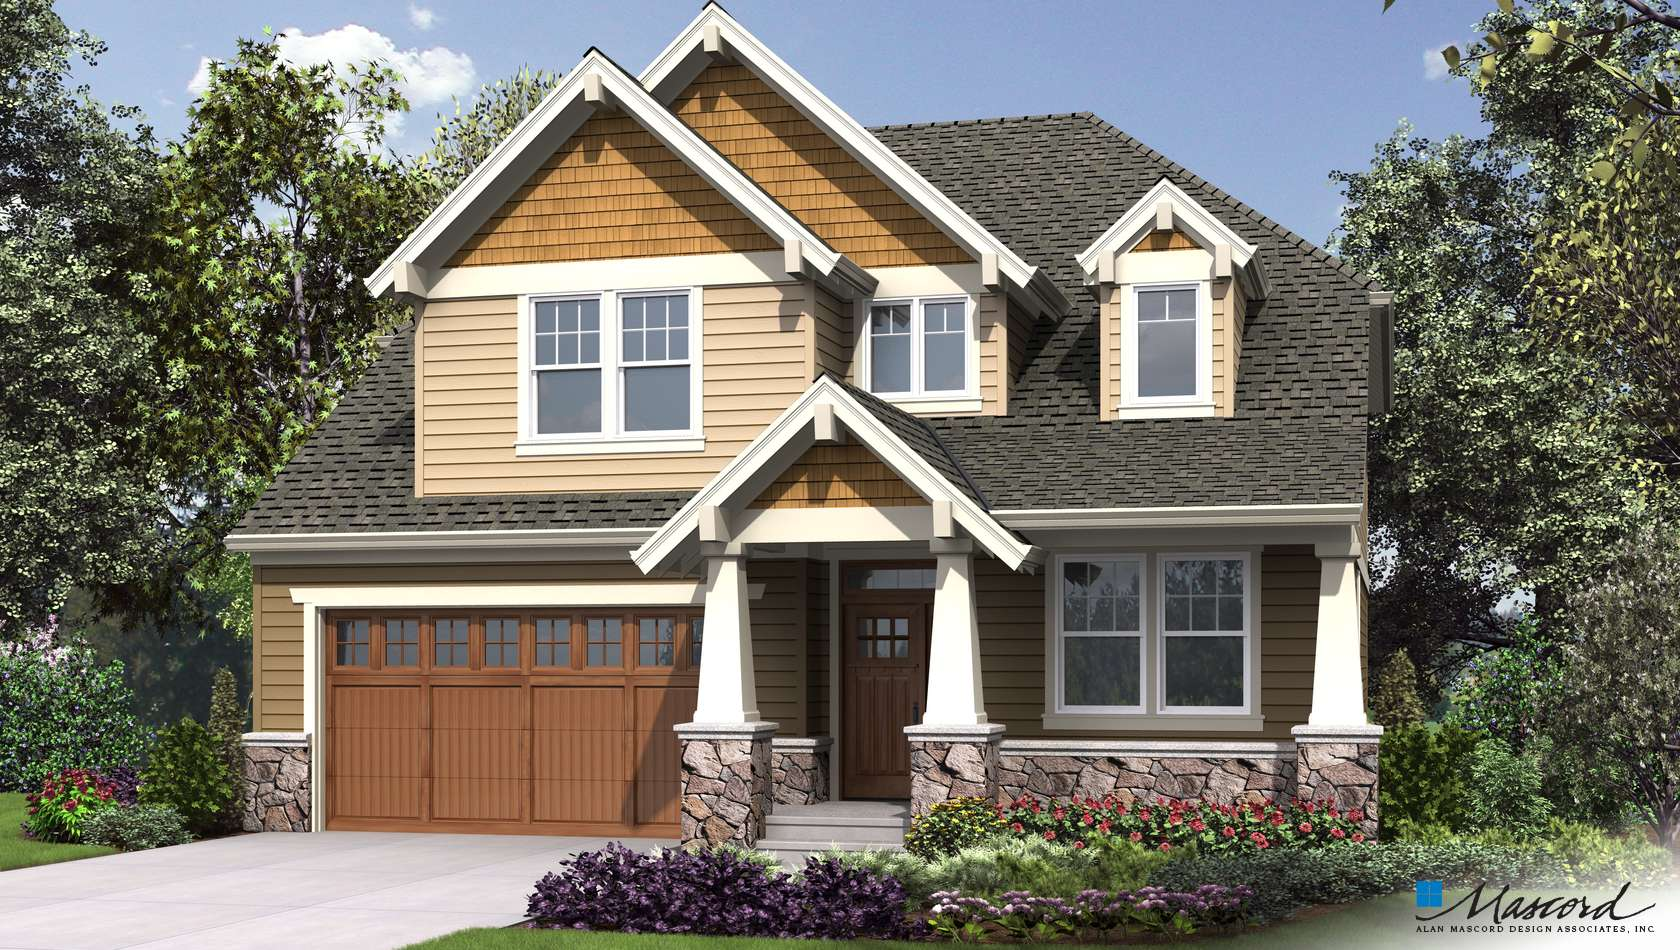 Main image for house plan 23114A: The Summerfell